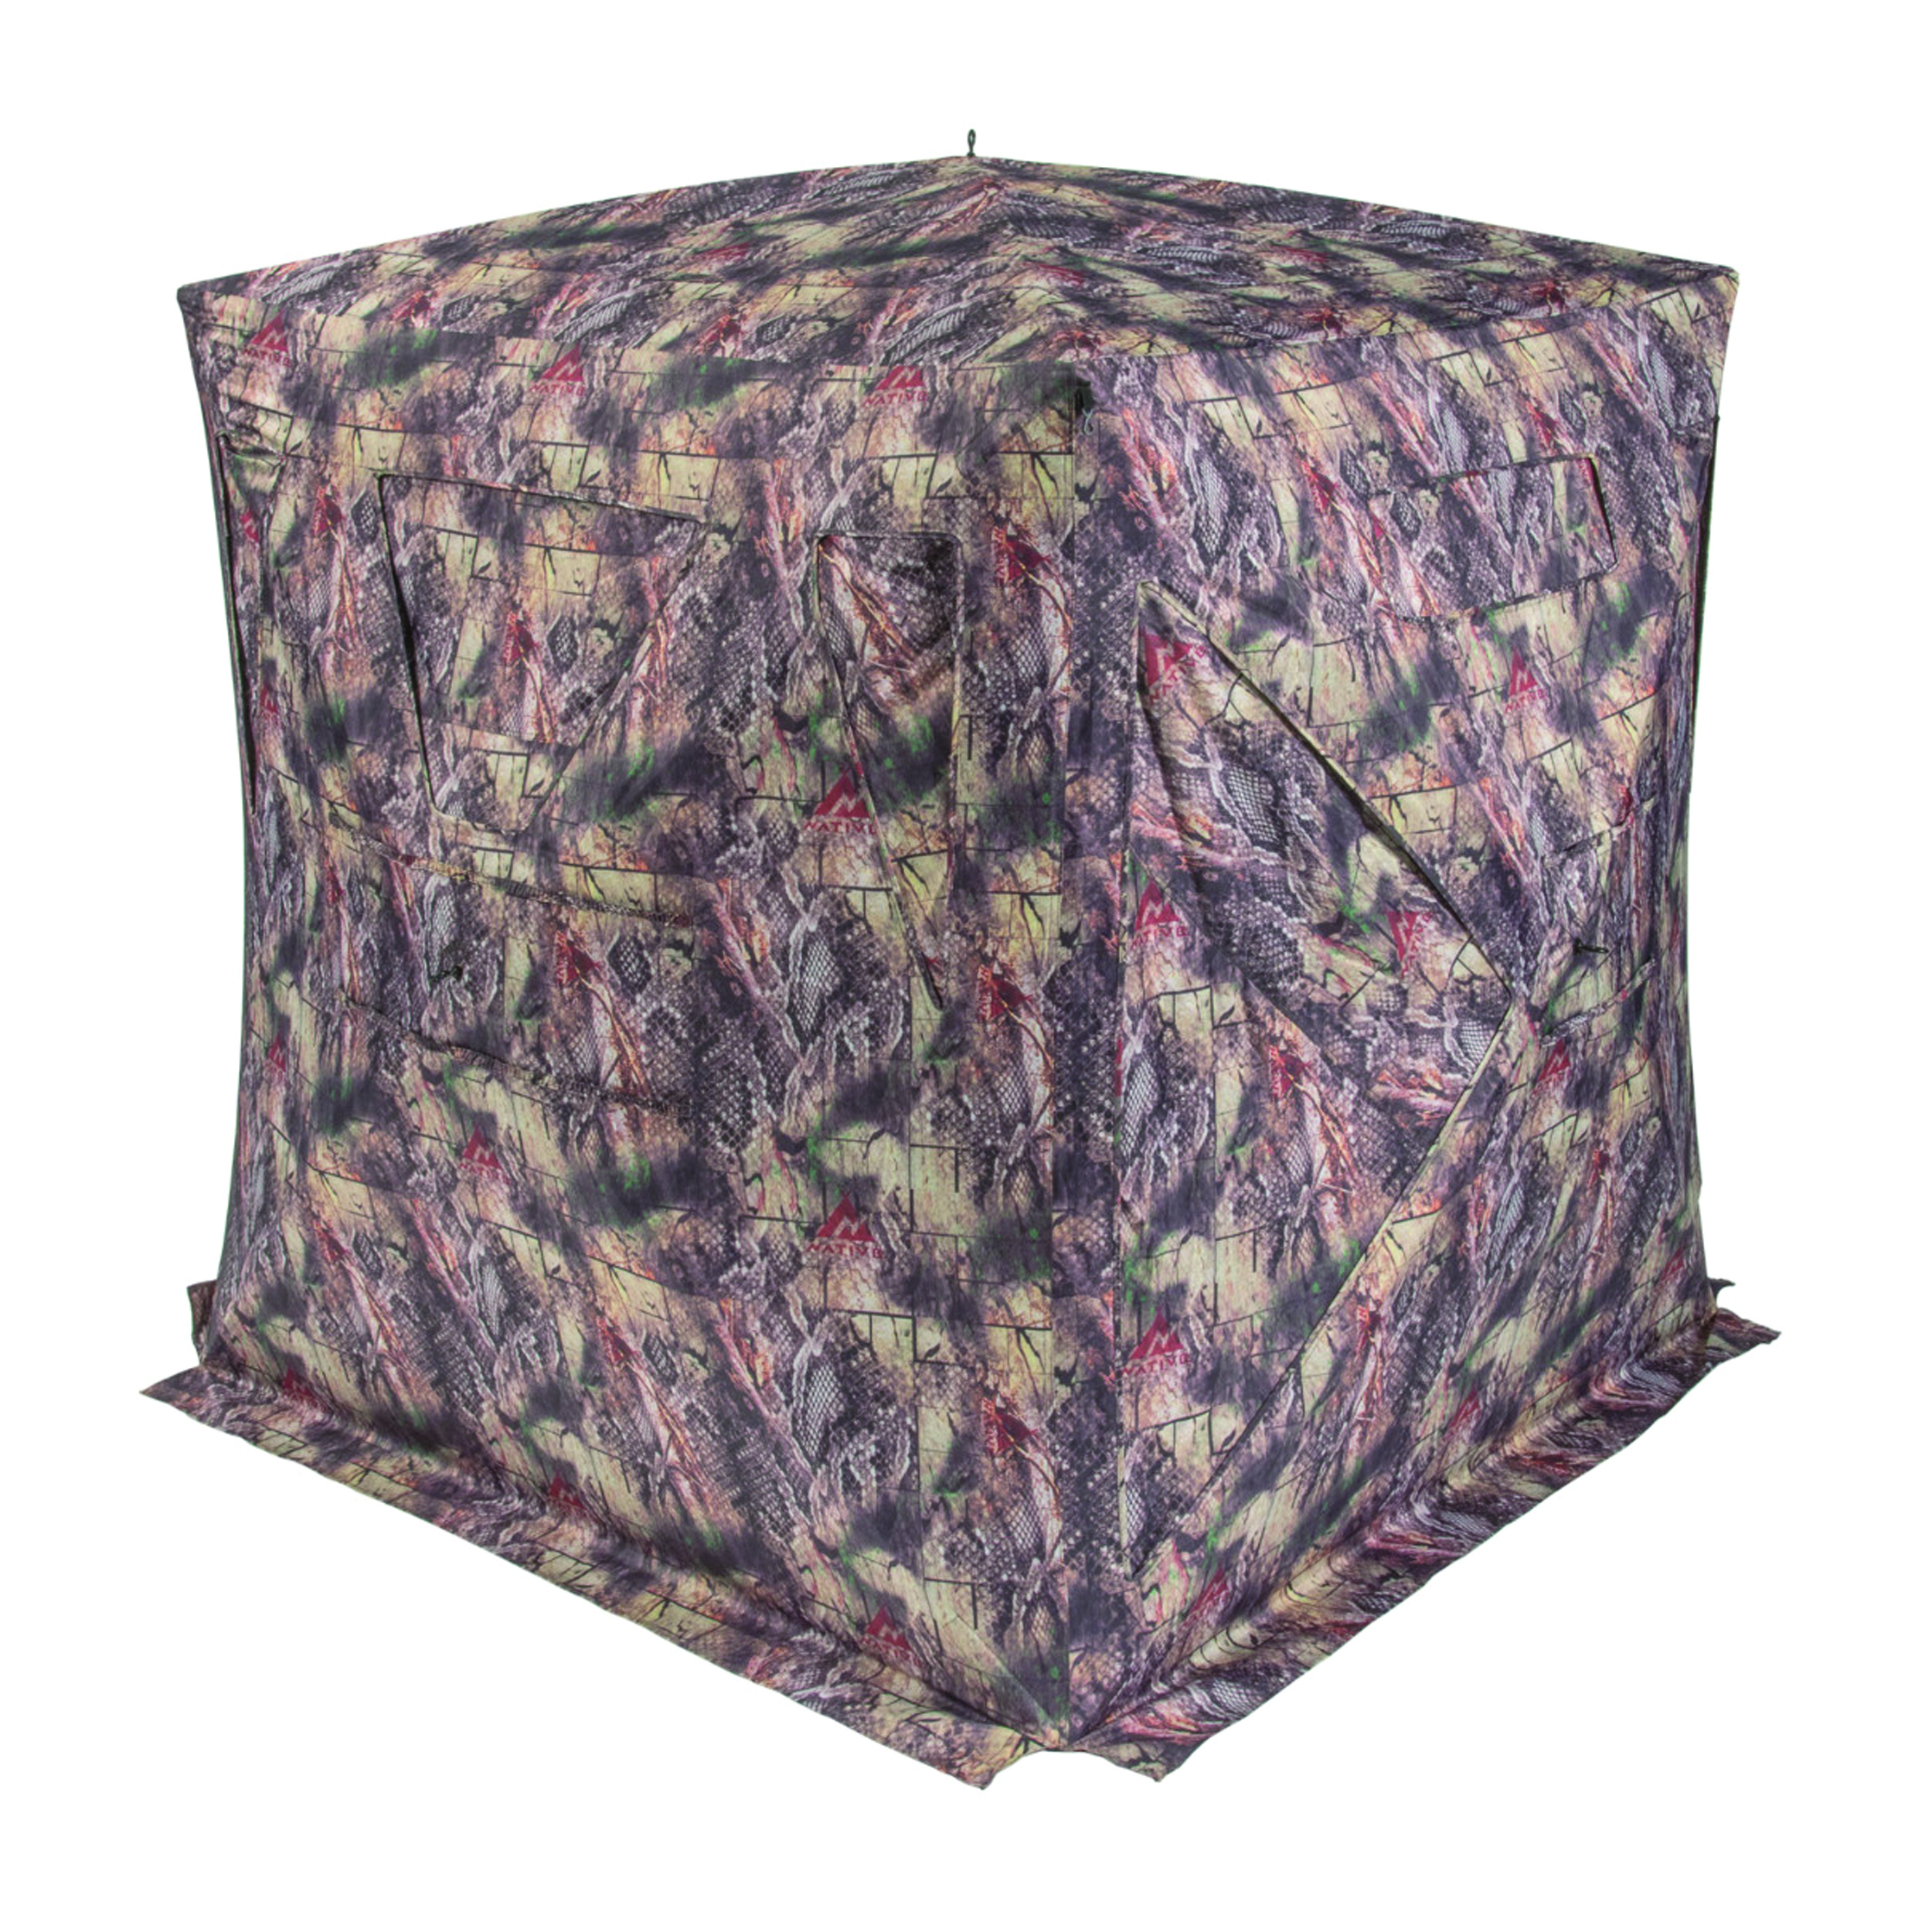 Native Ground Blinds Seminole 2 to 3 Person Ground Blind, Dirt Road Camo